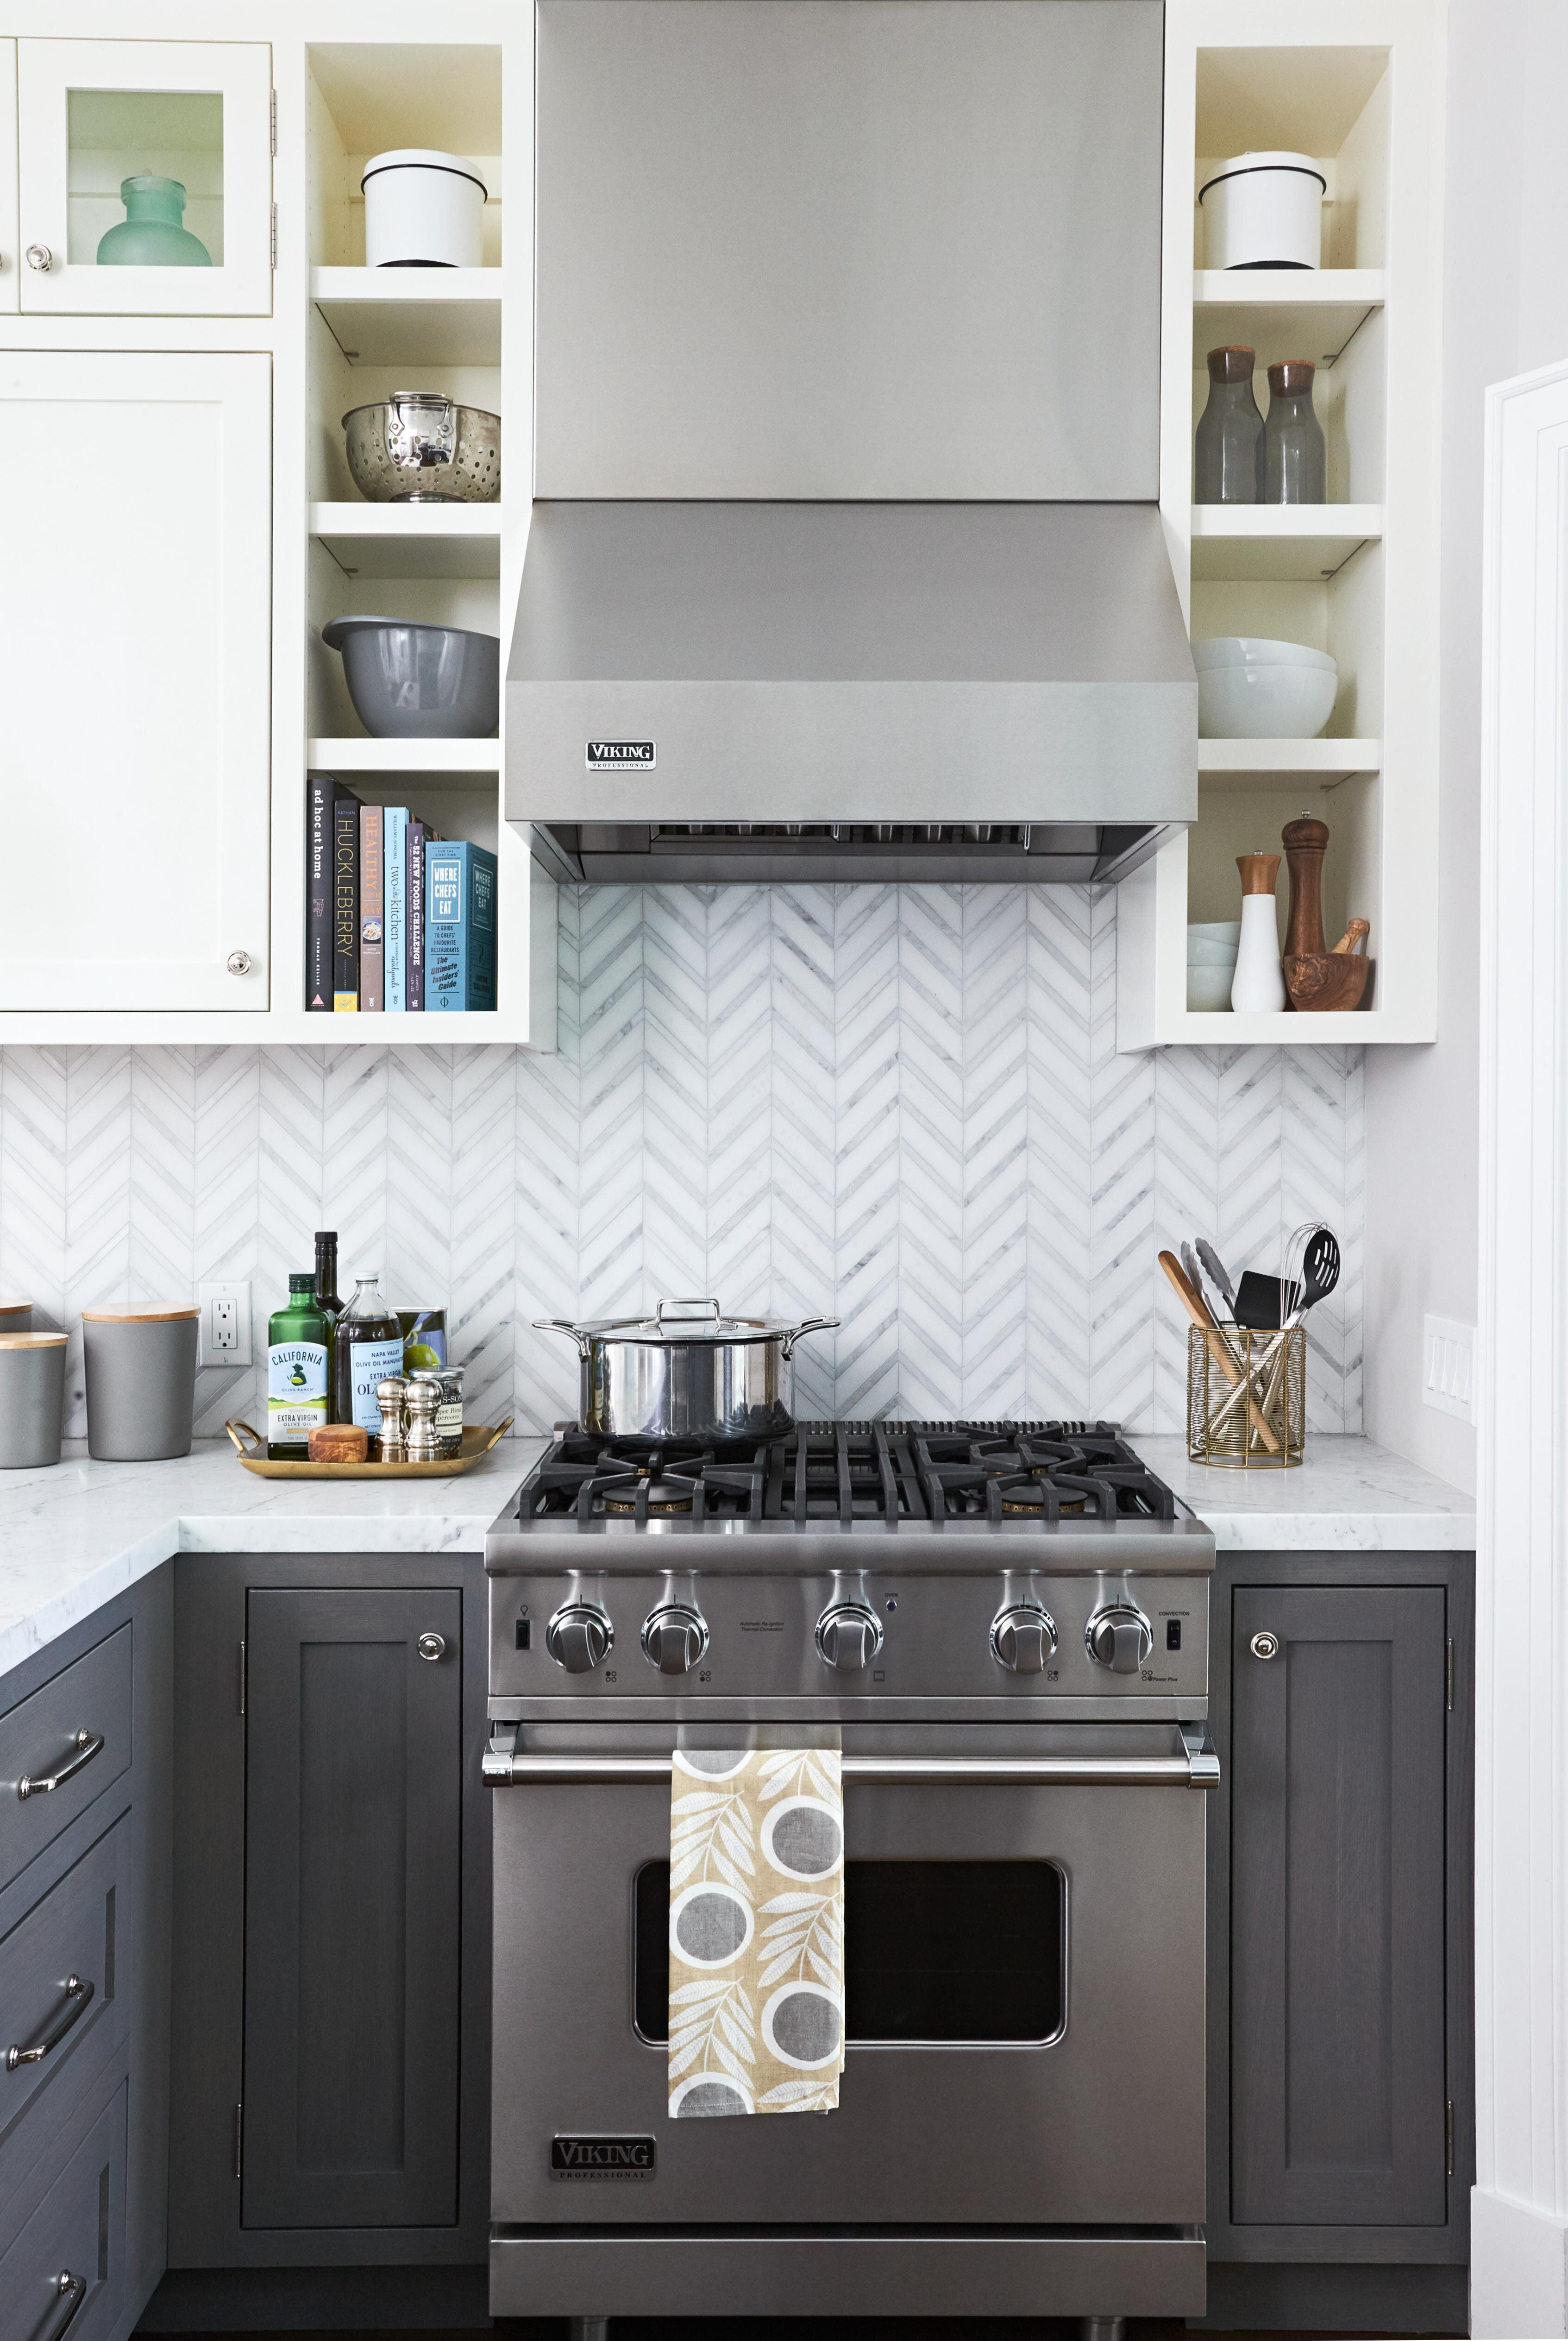 Tile Backsplash Classic Good Looks And A Casual Vibe Are Central To This Subway Tile Unique Kitchen Backsplash Kitchen Backsplash Designs Kitchen Tiles Design